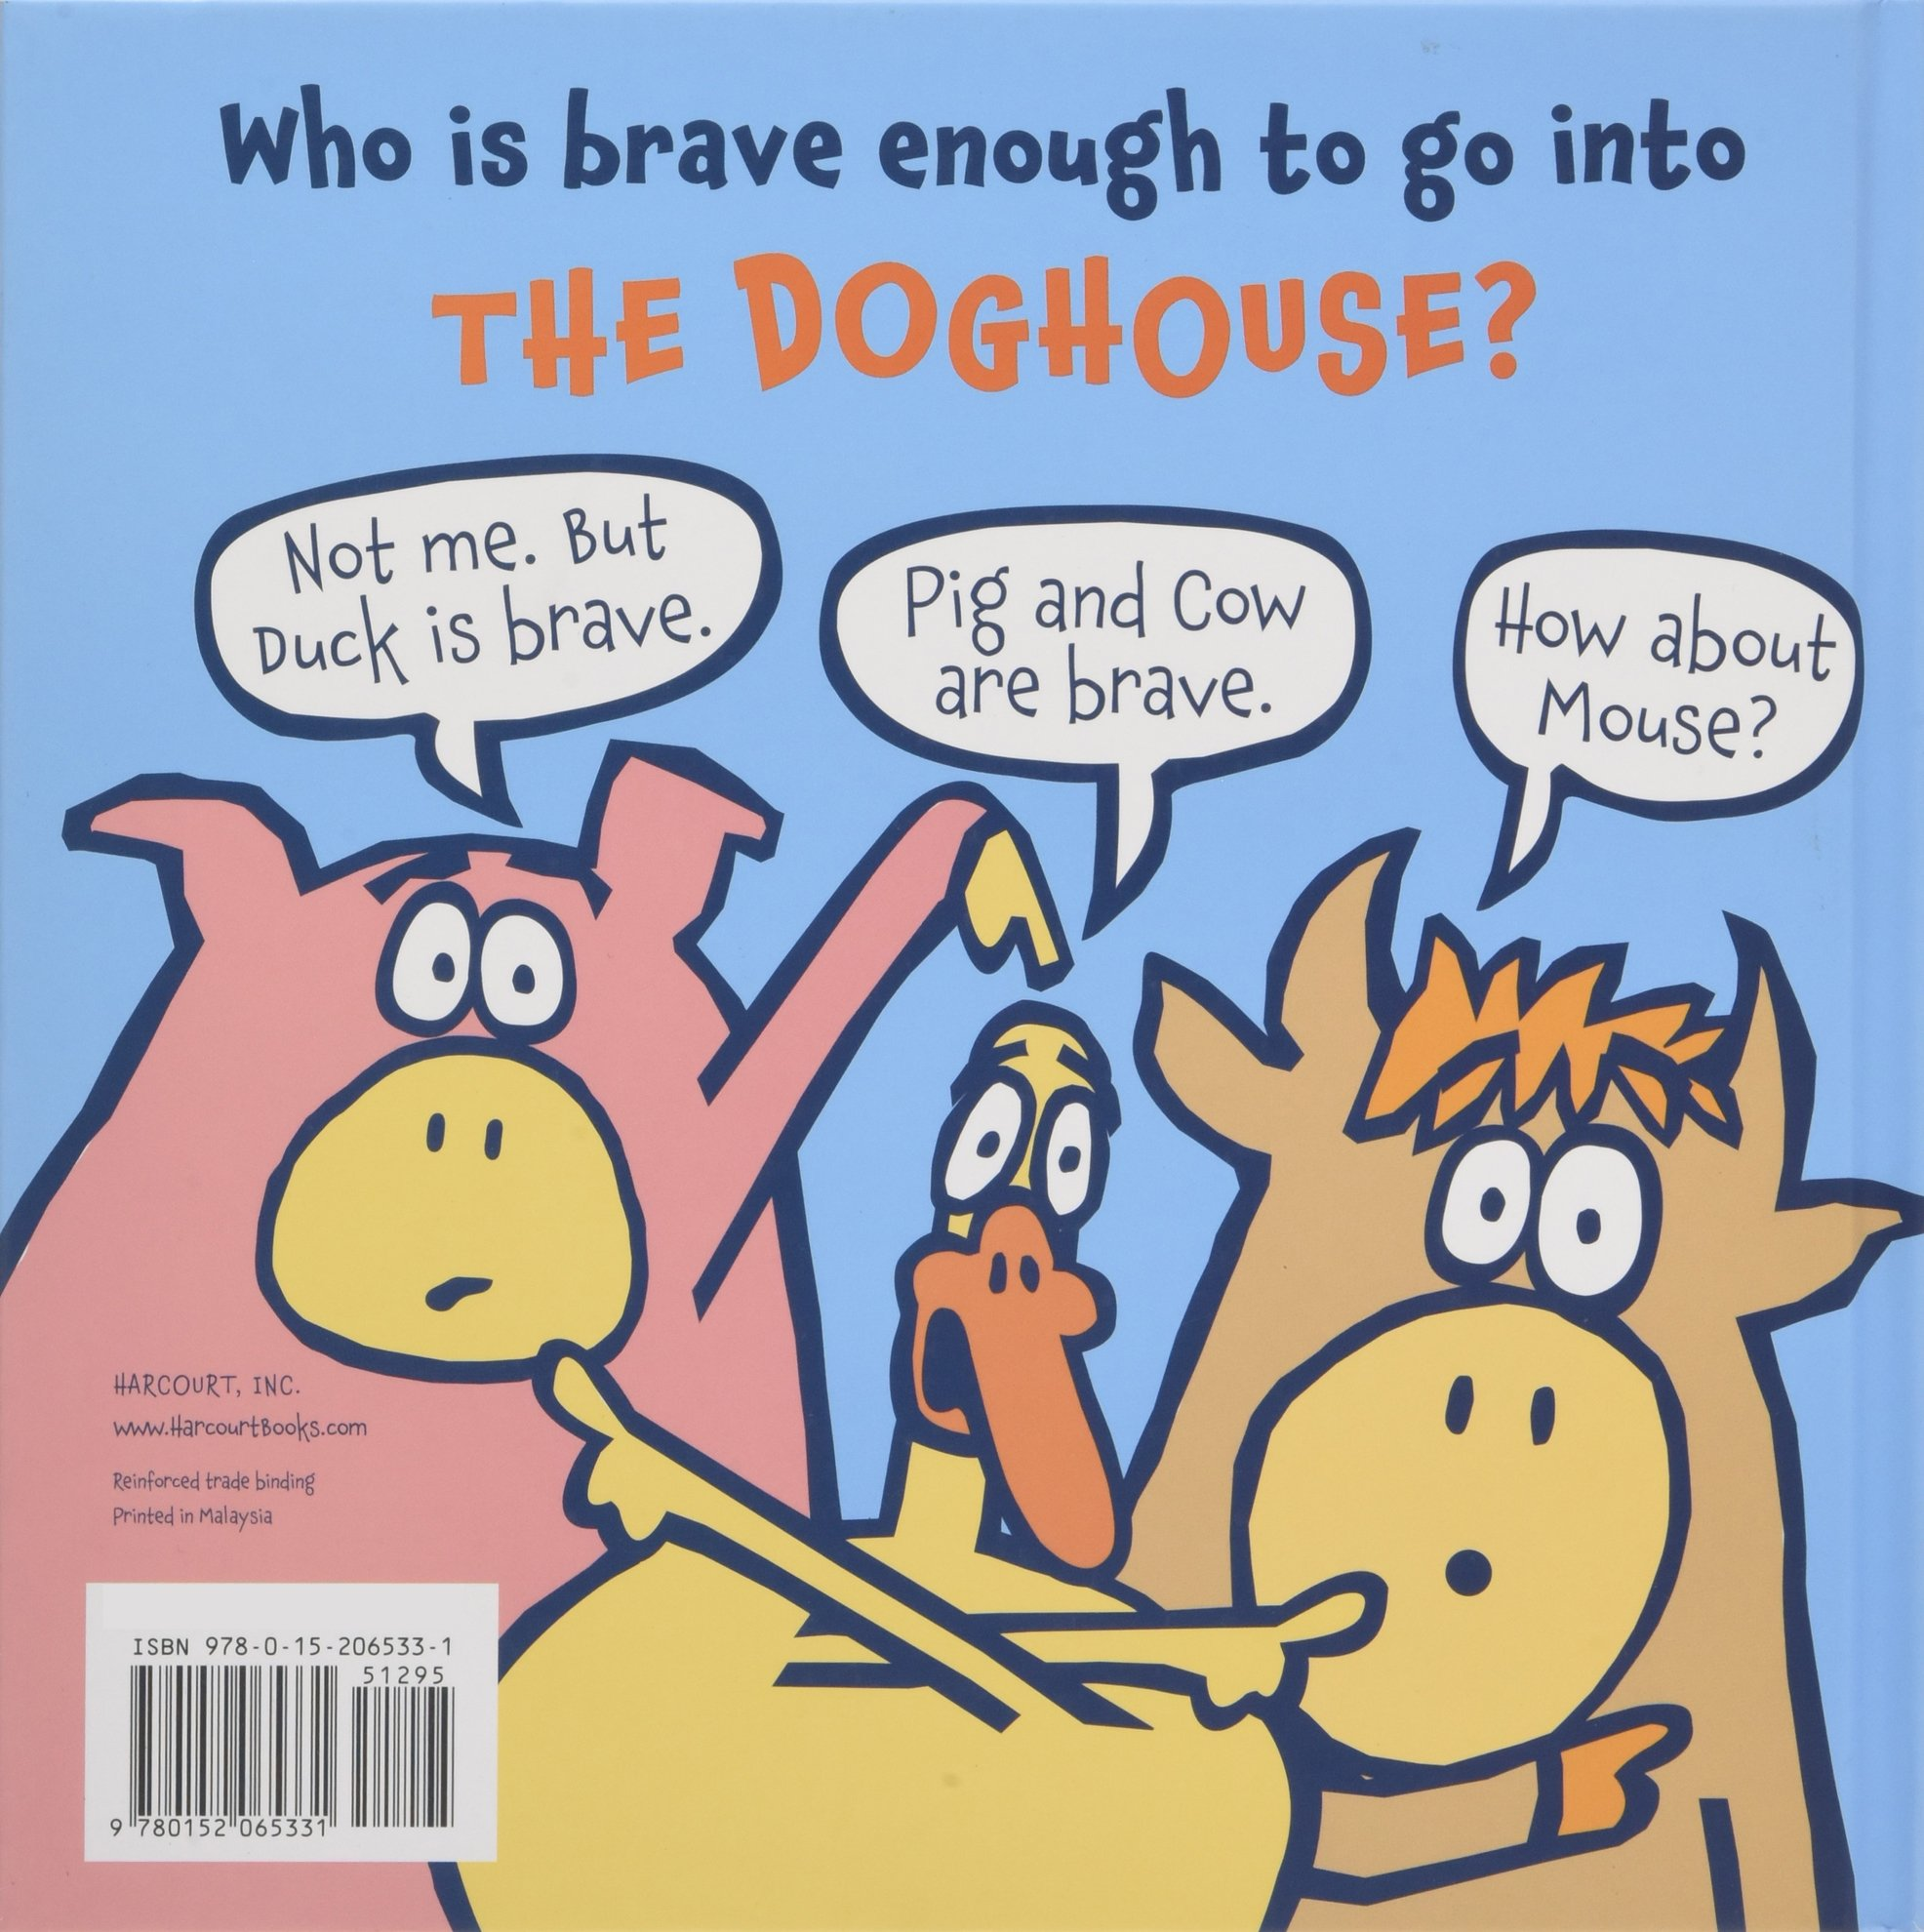 This picture of cartoon cows there s a dog hiding can you find it - This Picture Of Cartoon Cows There S A Dog Hiding Can You Find It 46